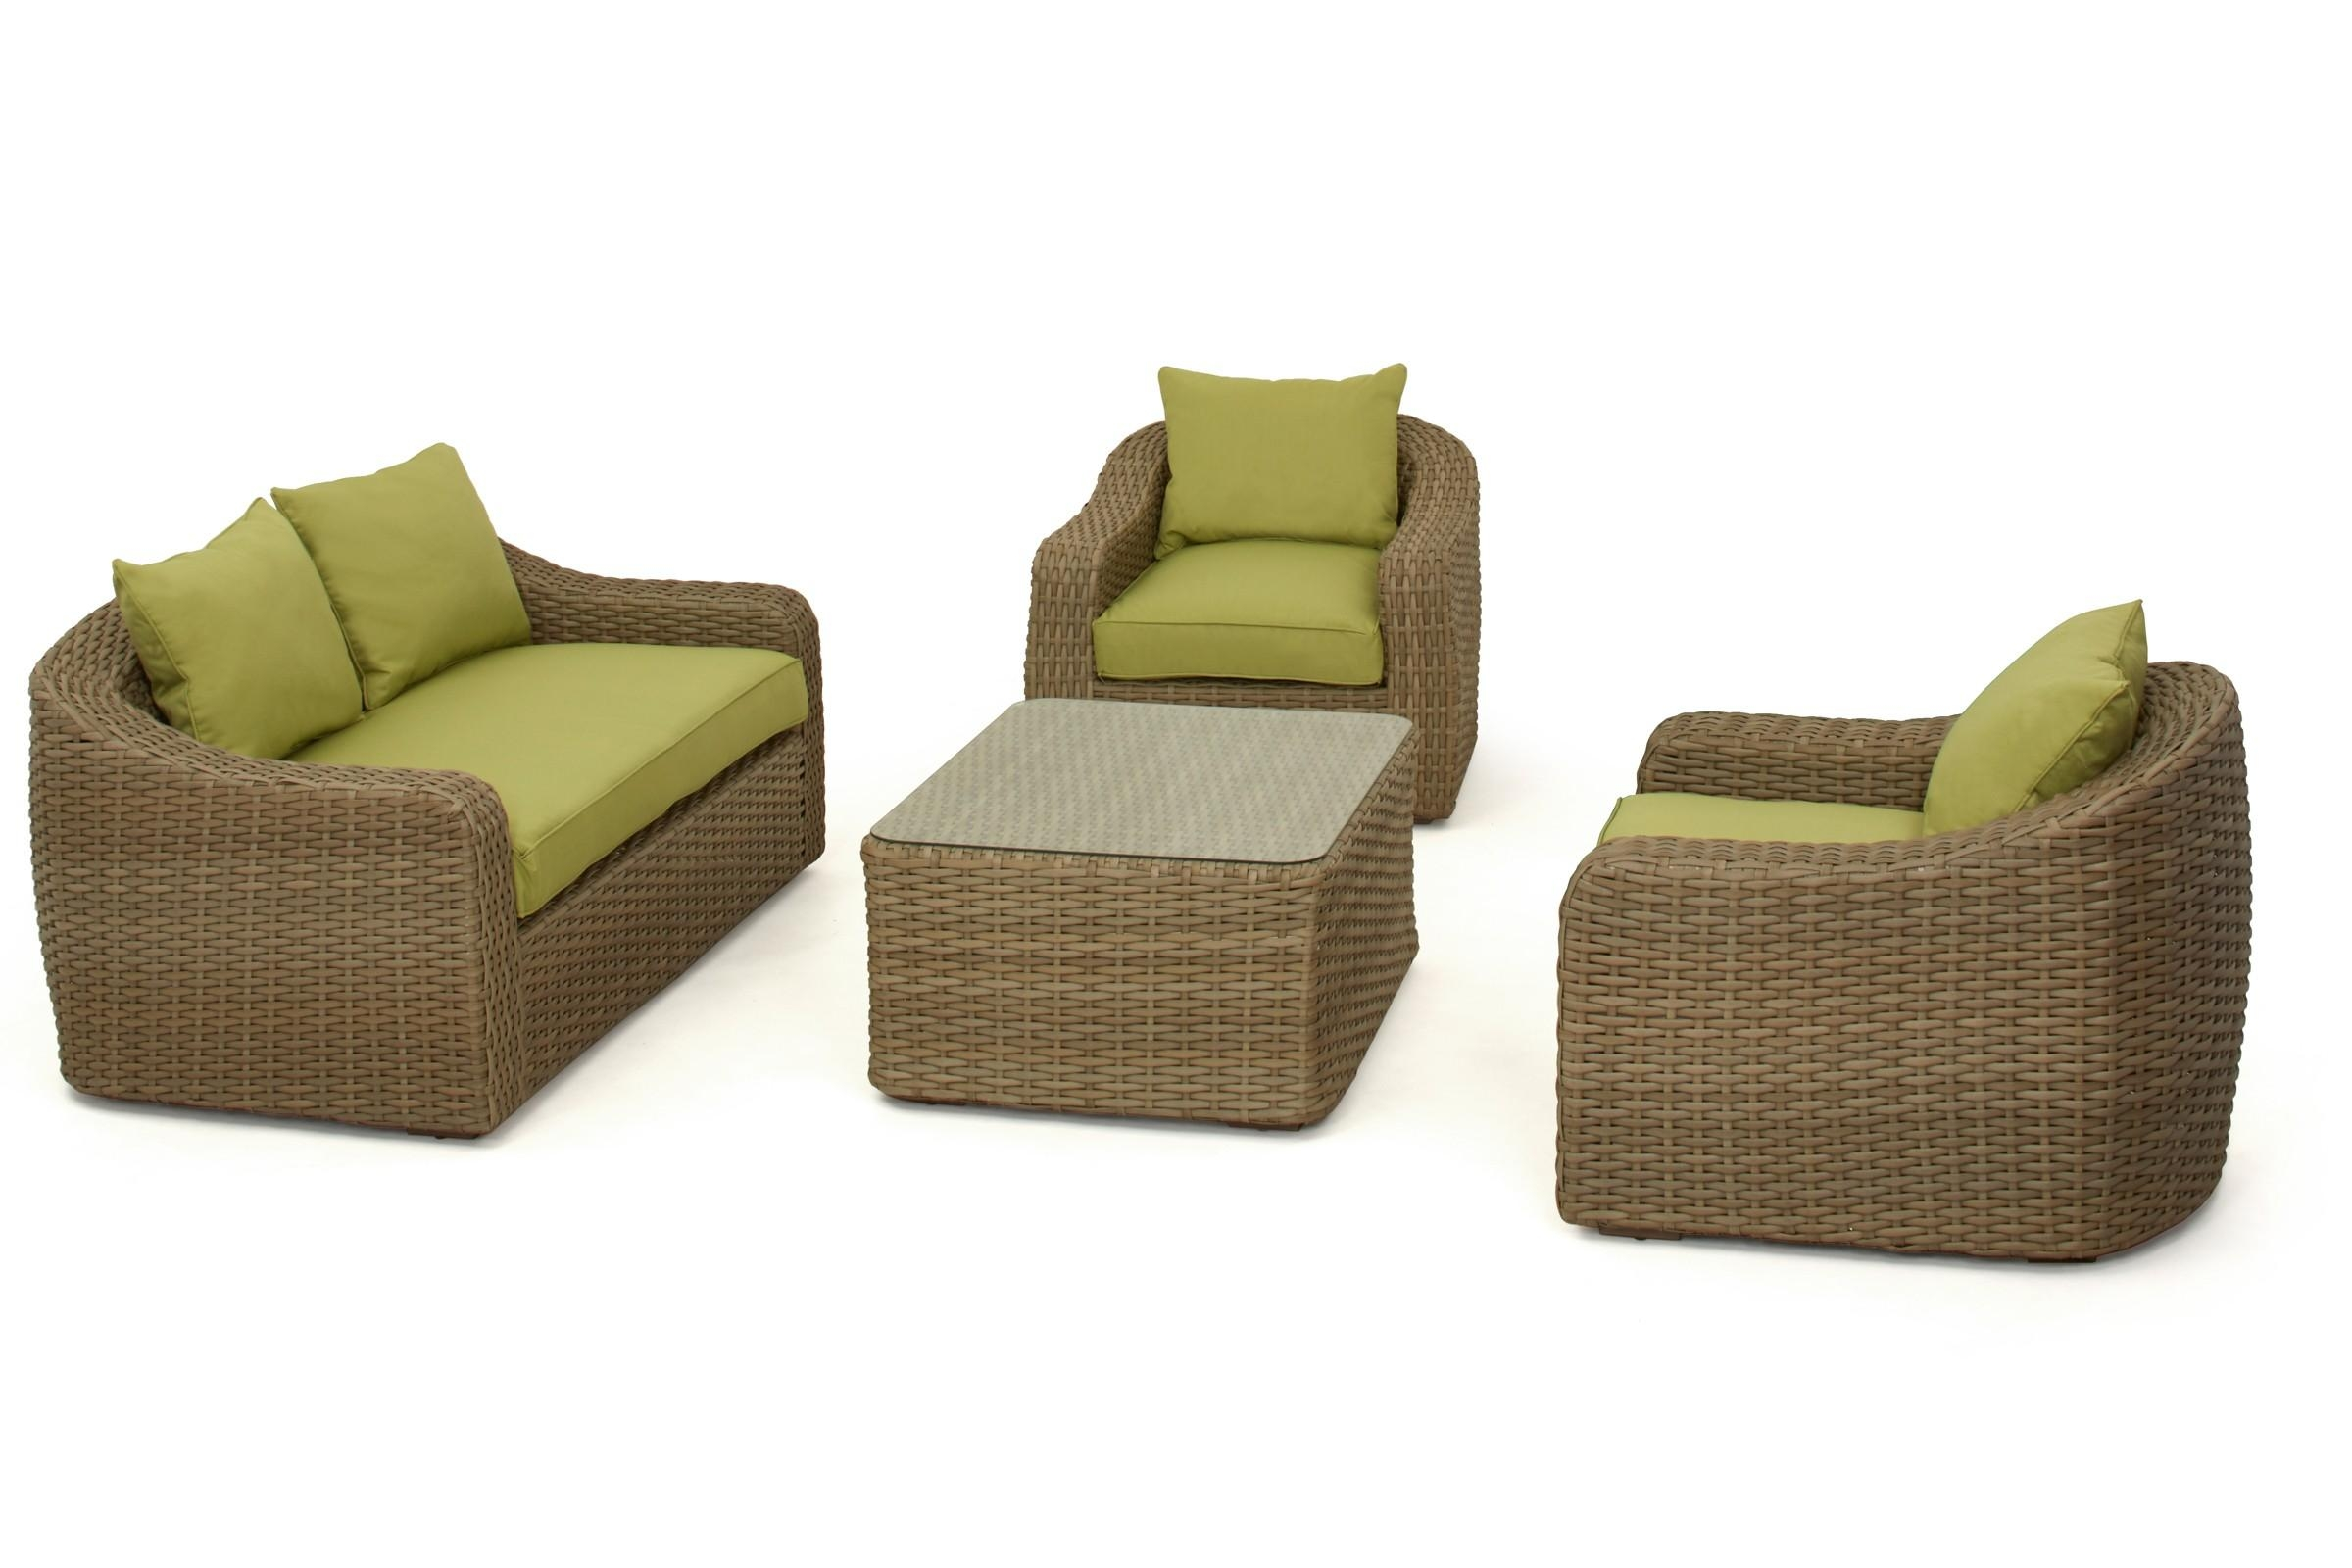 Maze Rattan Milan Rounded Sofa Set | Maze Living Within Rounded Sofa (View 15 of 20)